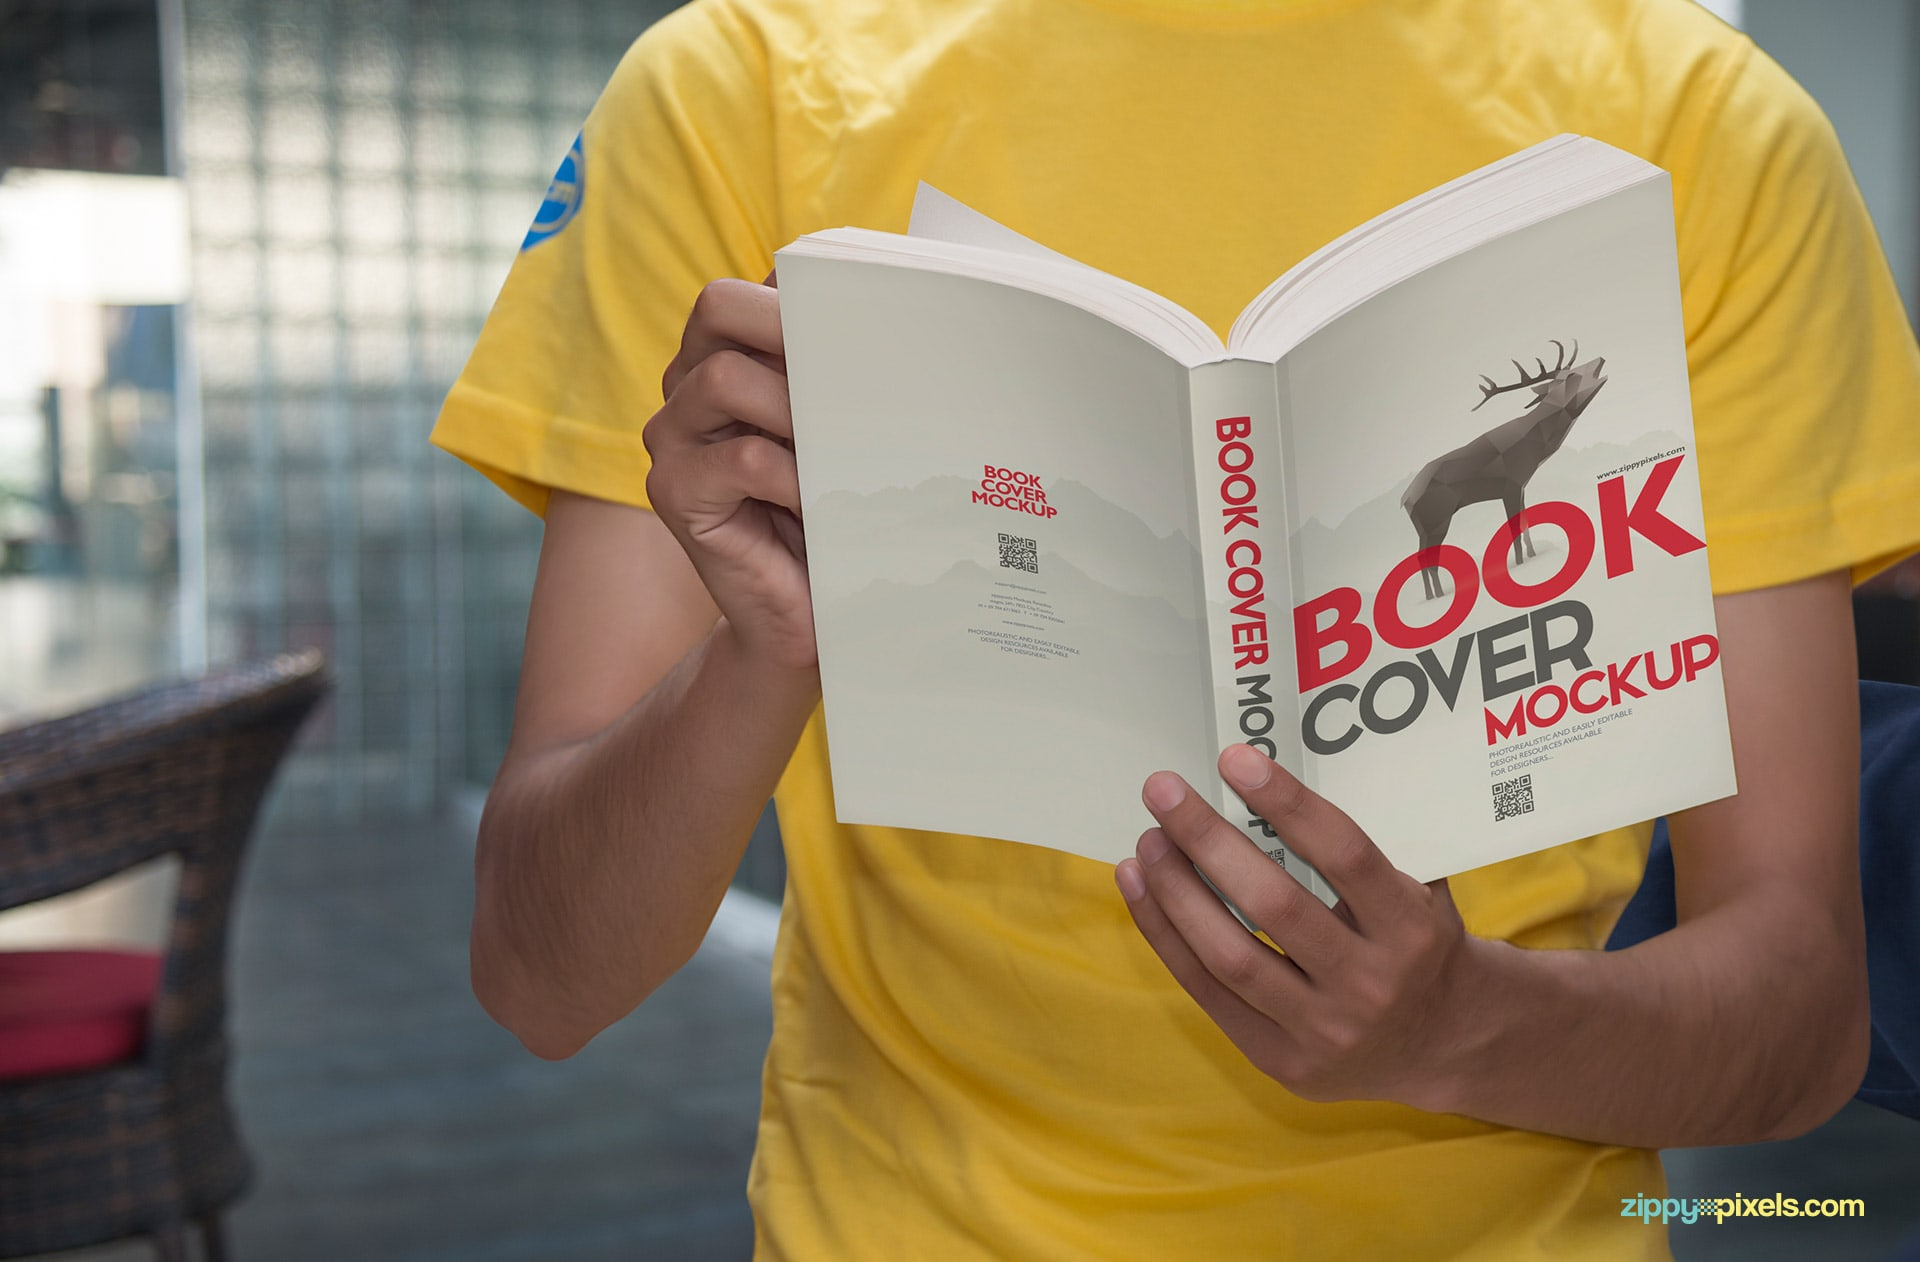 Book cover mockup - a low angle shot giving full cover view of paperback cover